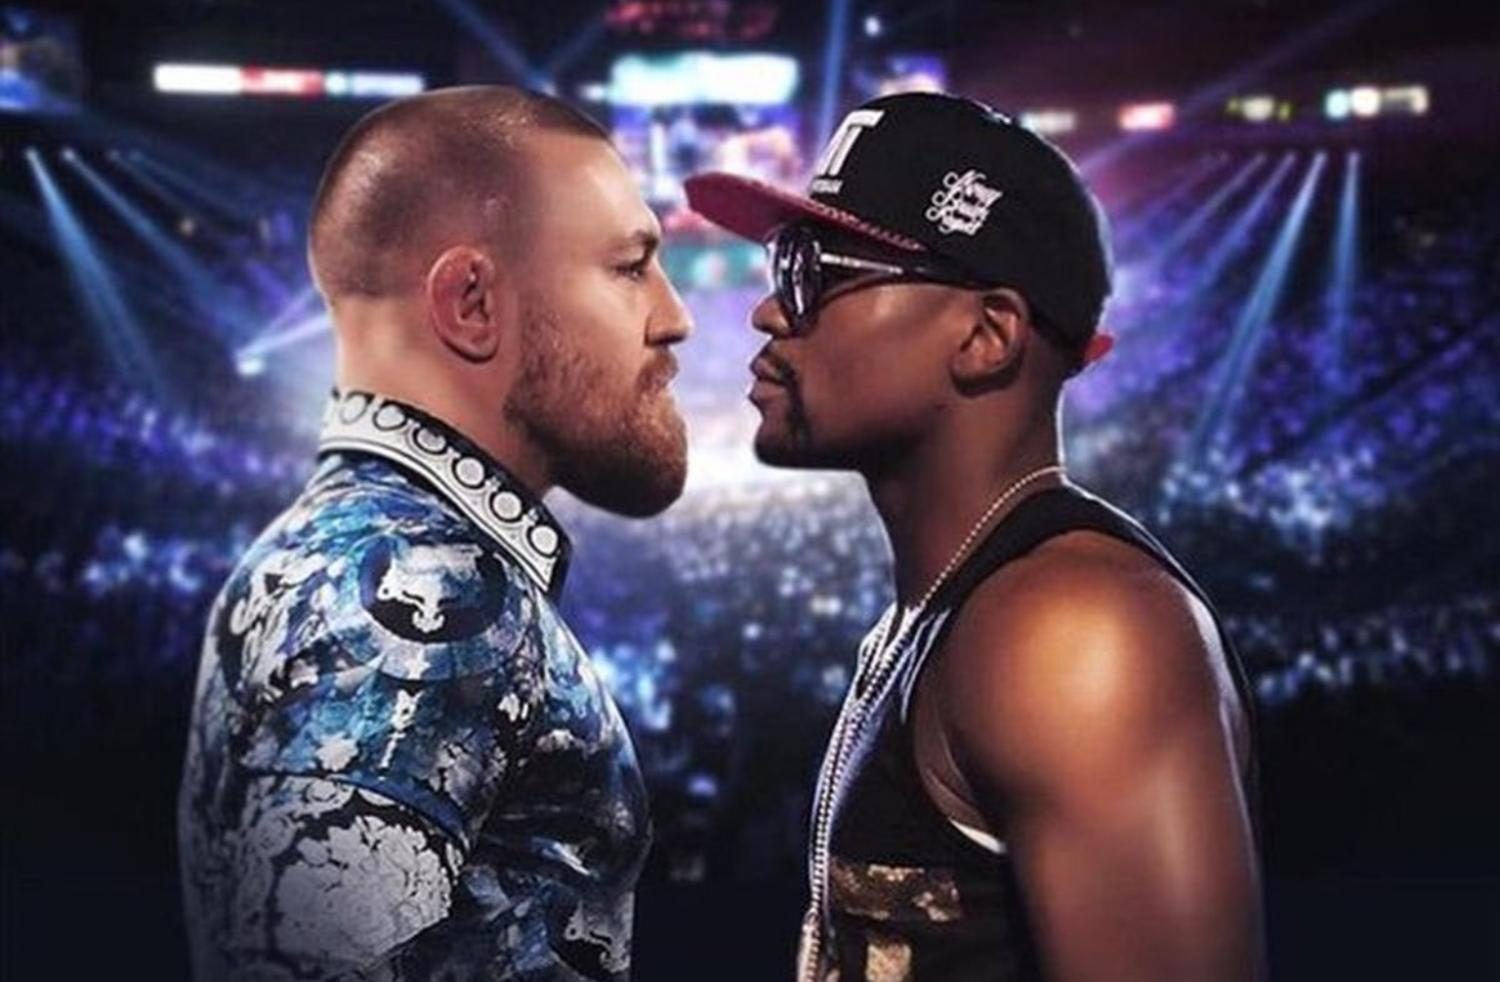 McGregor and Mayweather stare each other down preparing for the fight (photo courtesy of SB Nation).